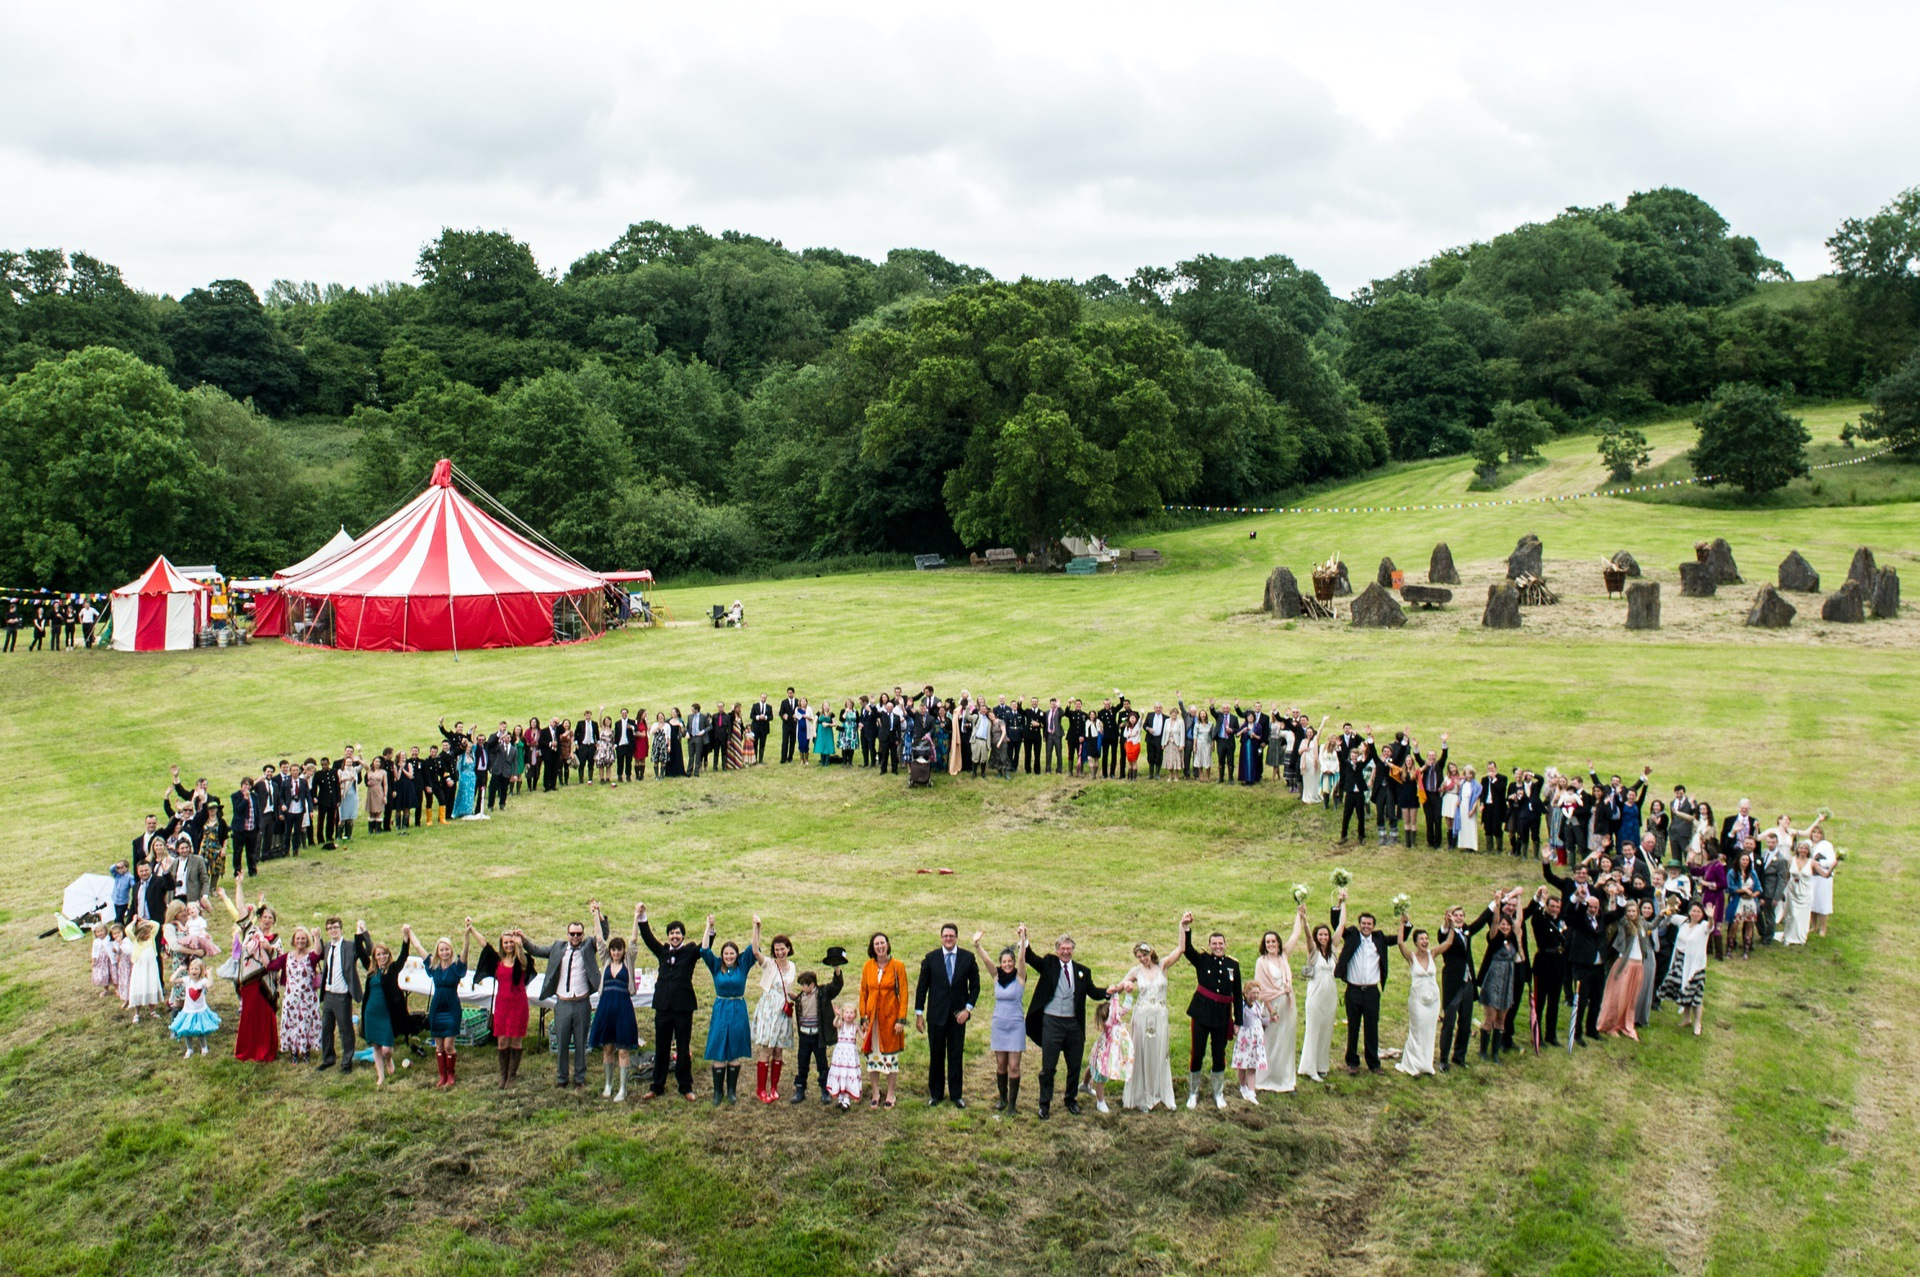 big festival wedding group photograph by a drone